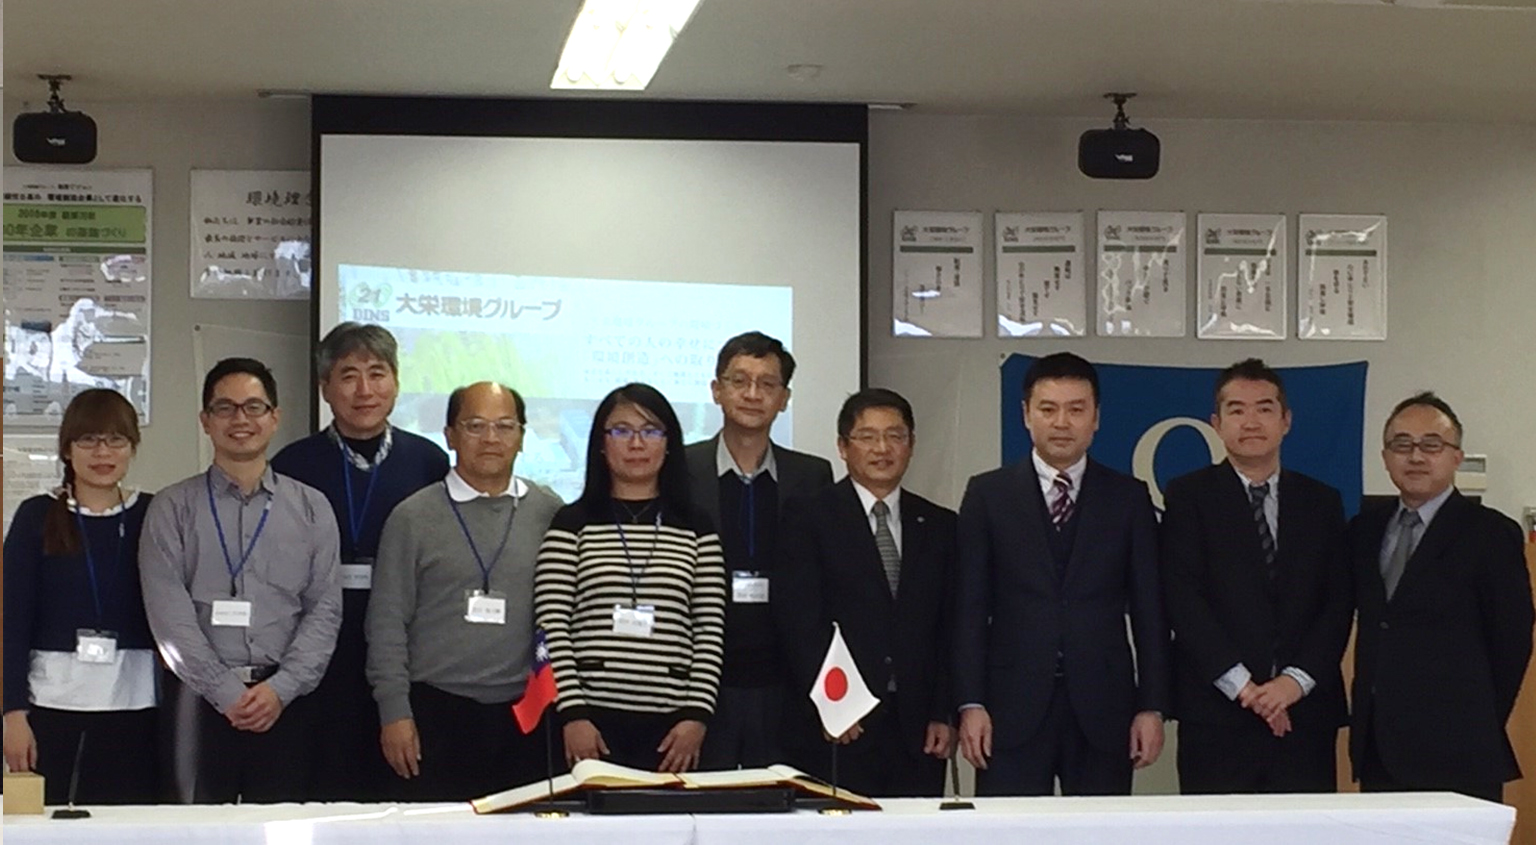 Department of Environmental Science and Engineering signed Internship Agreement with Japan Daiei Kankyo Group